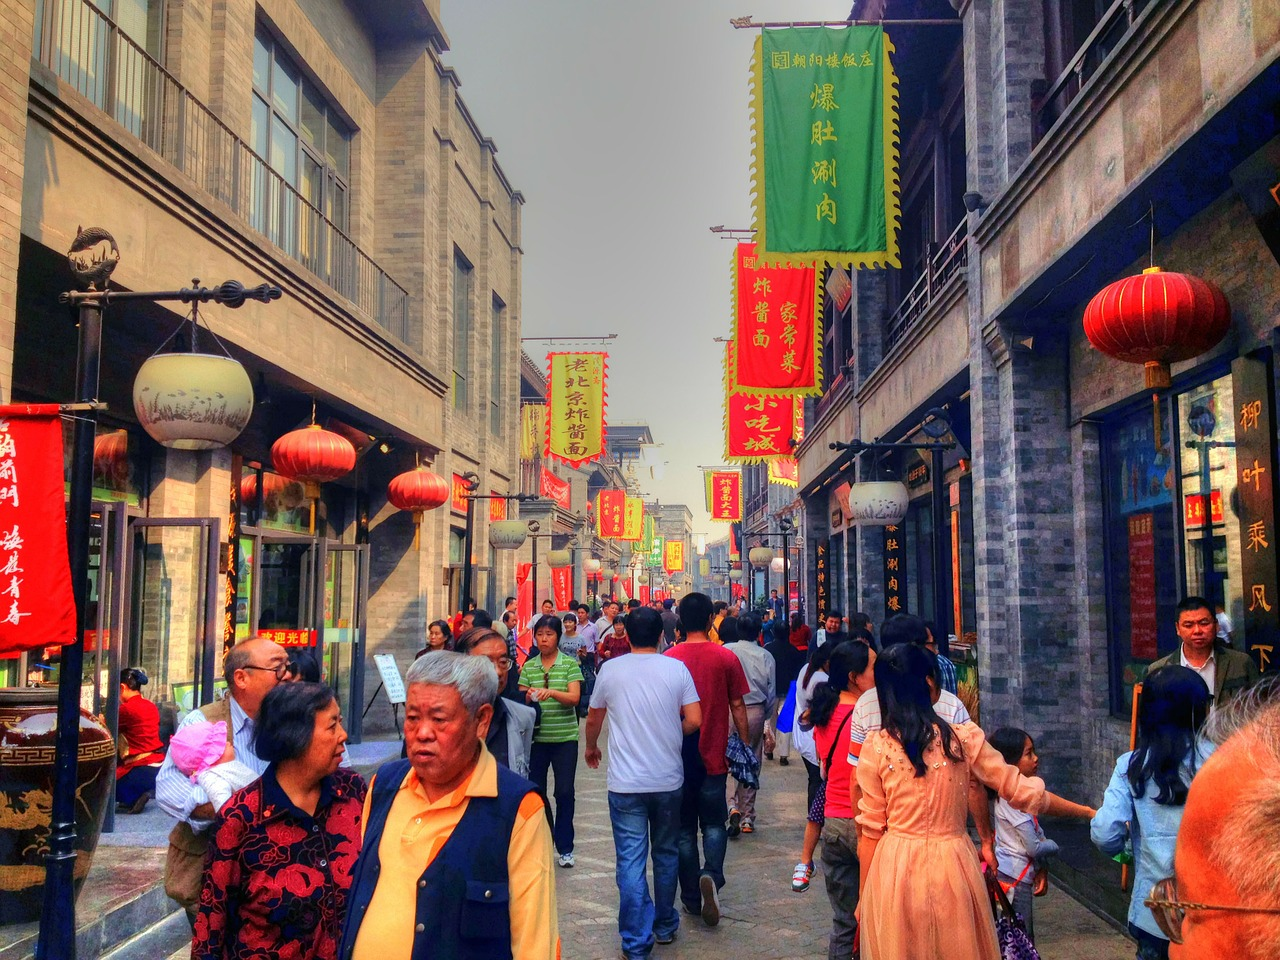 Street in China